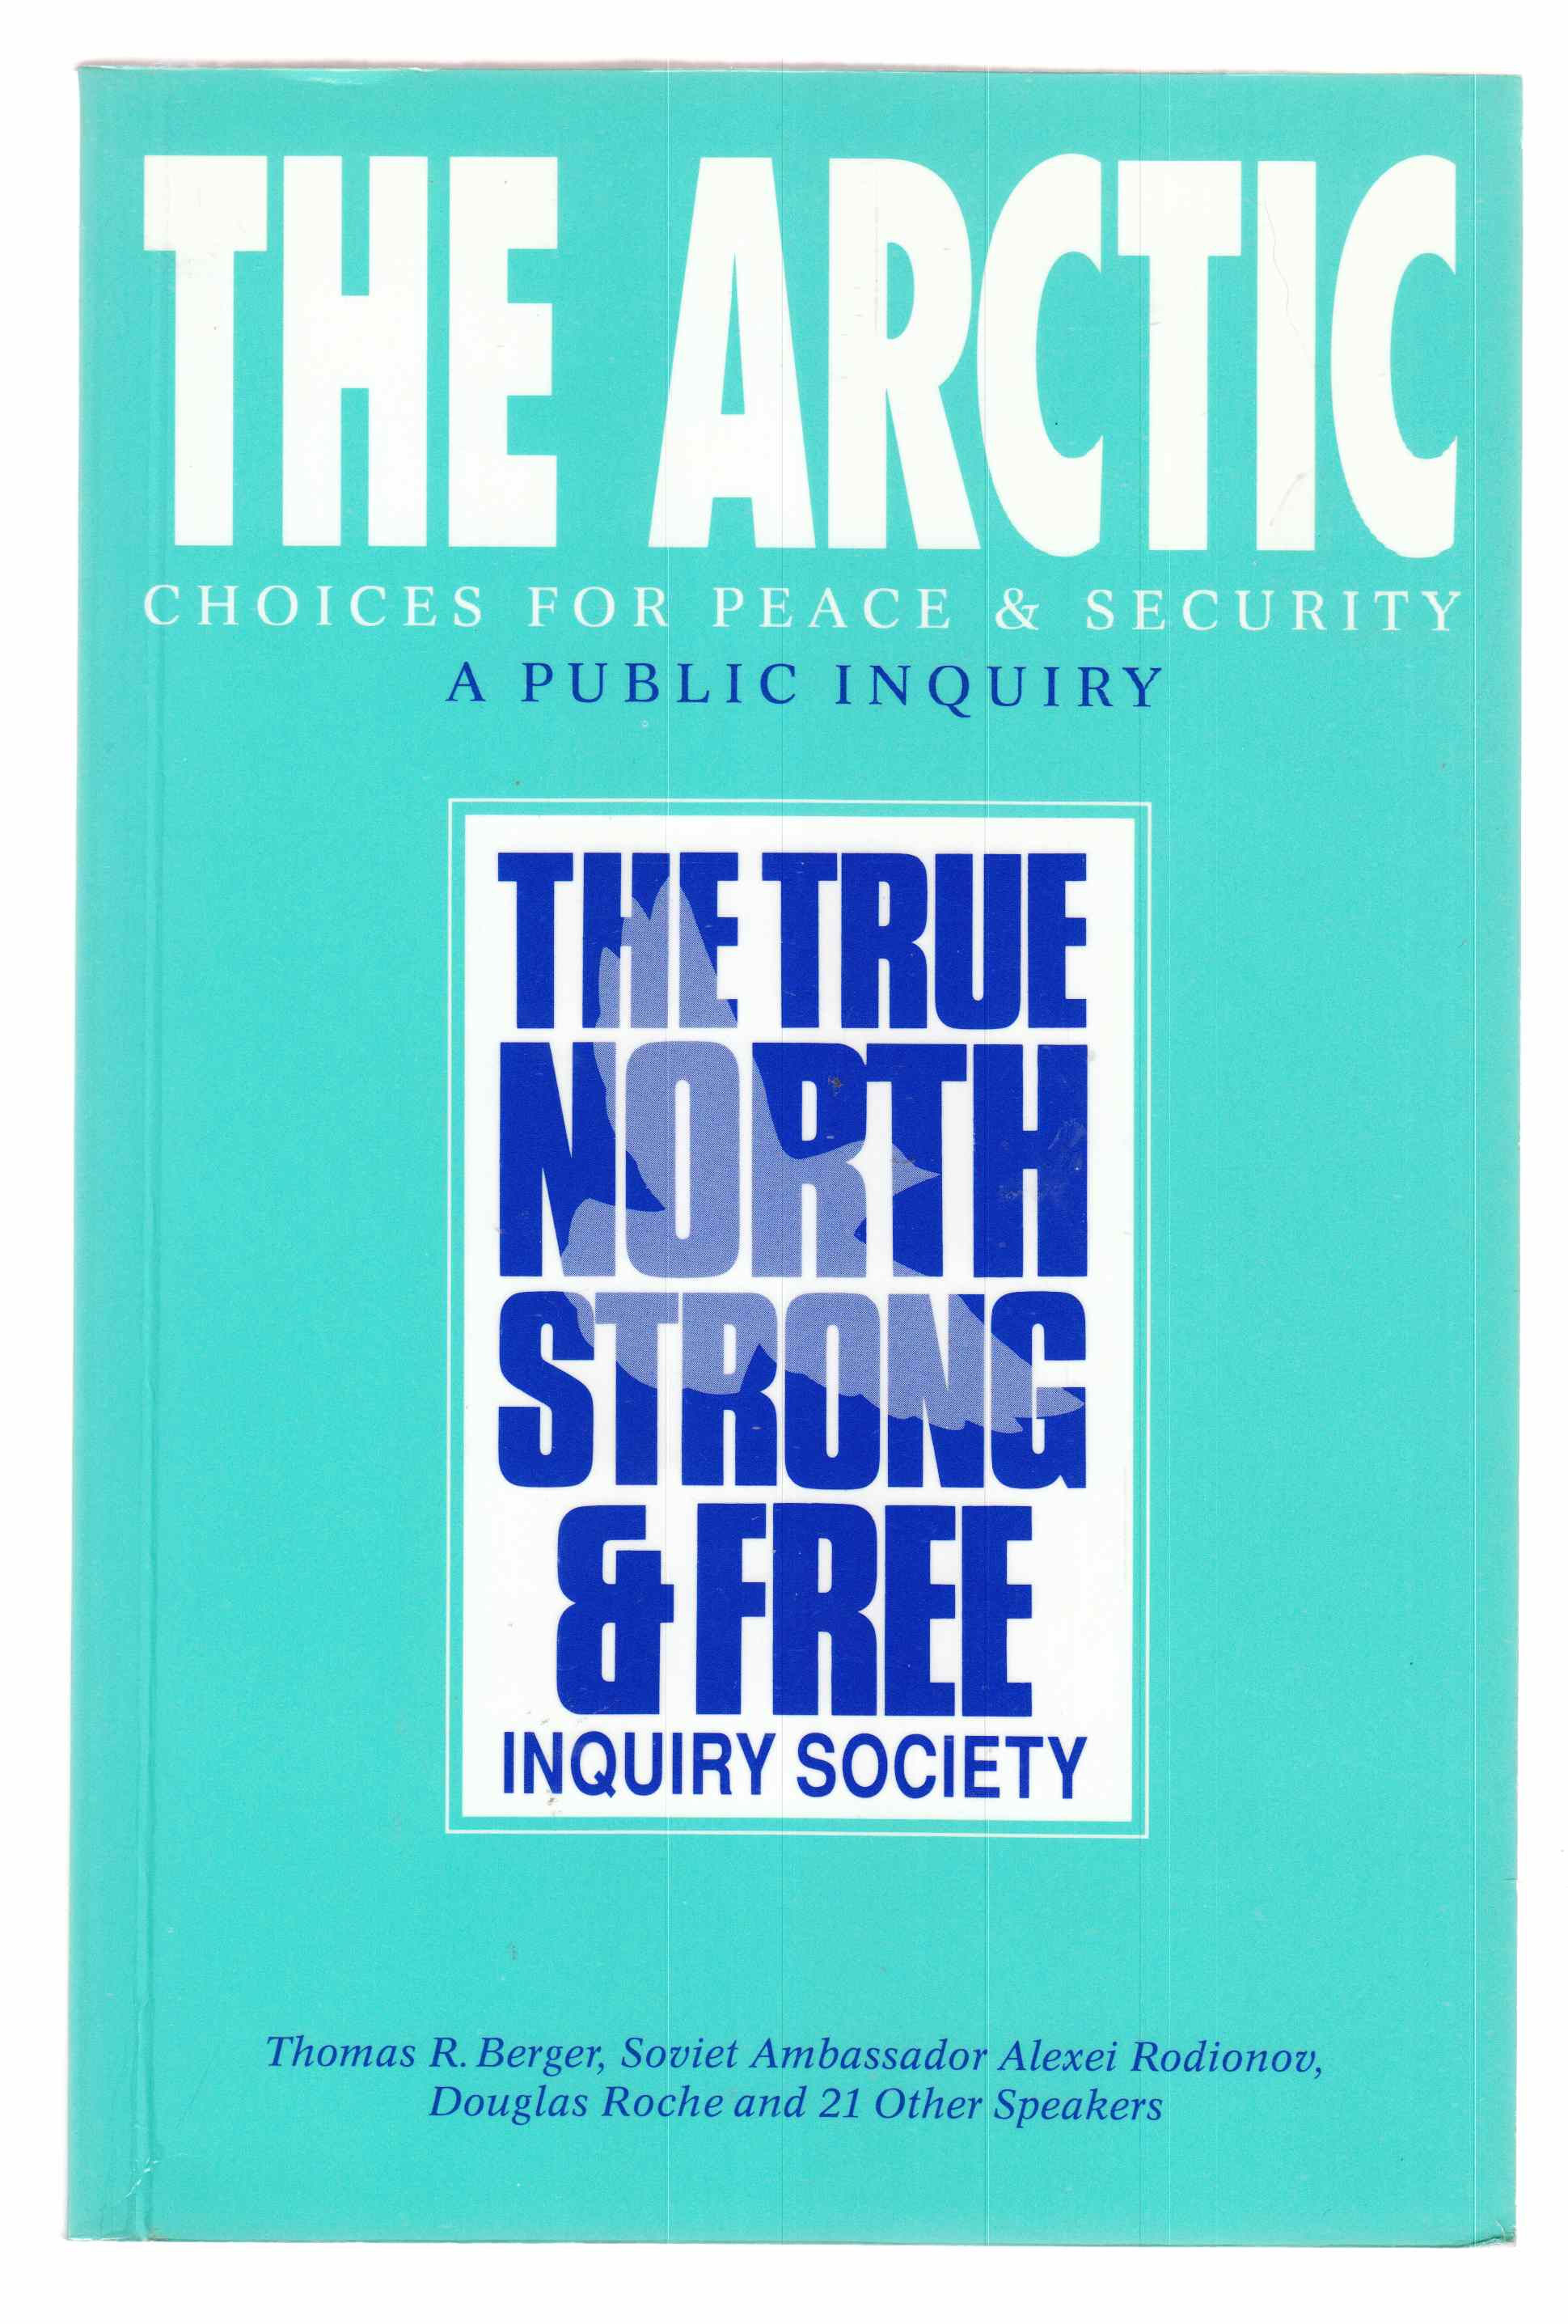 Image for The Arctic Choices for Peace and Security : Proceedings of a Public Inquiry